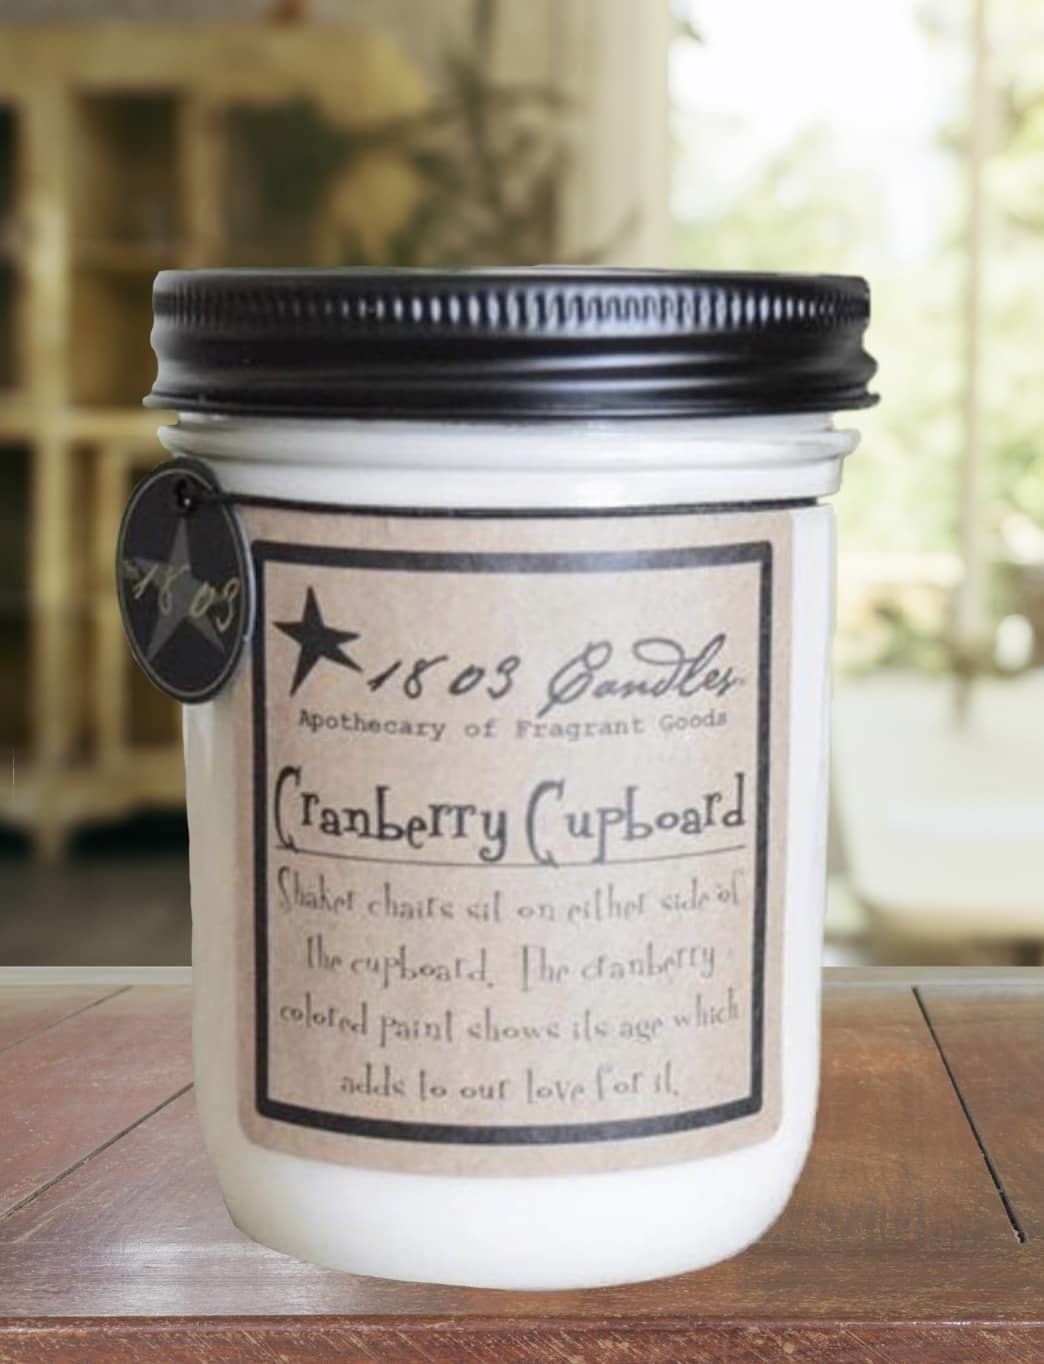 1803 Candles 1803 Cranberry Cupboard Candle